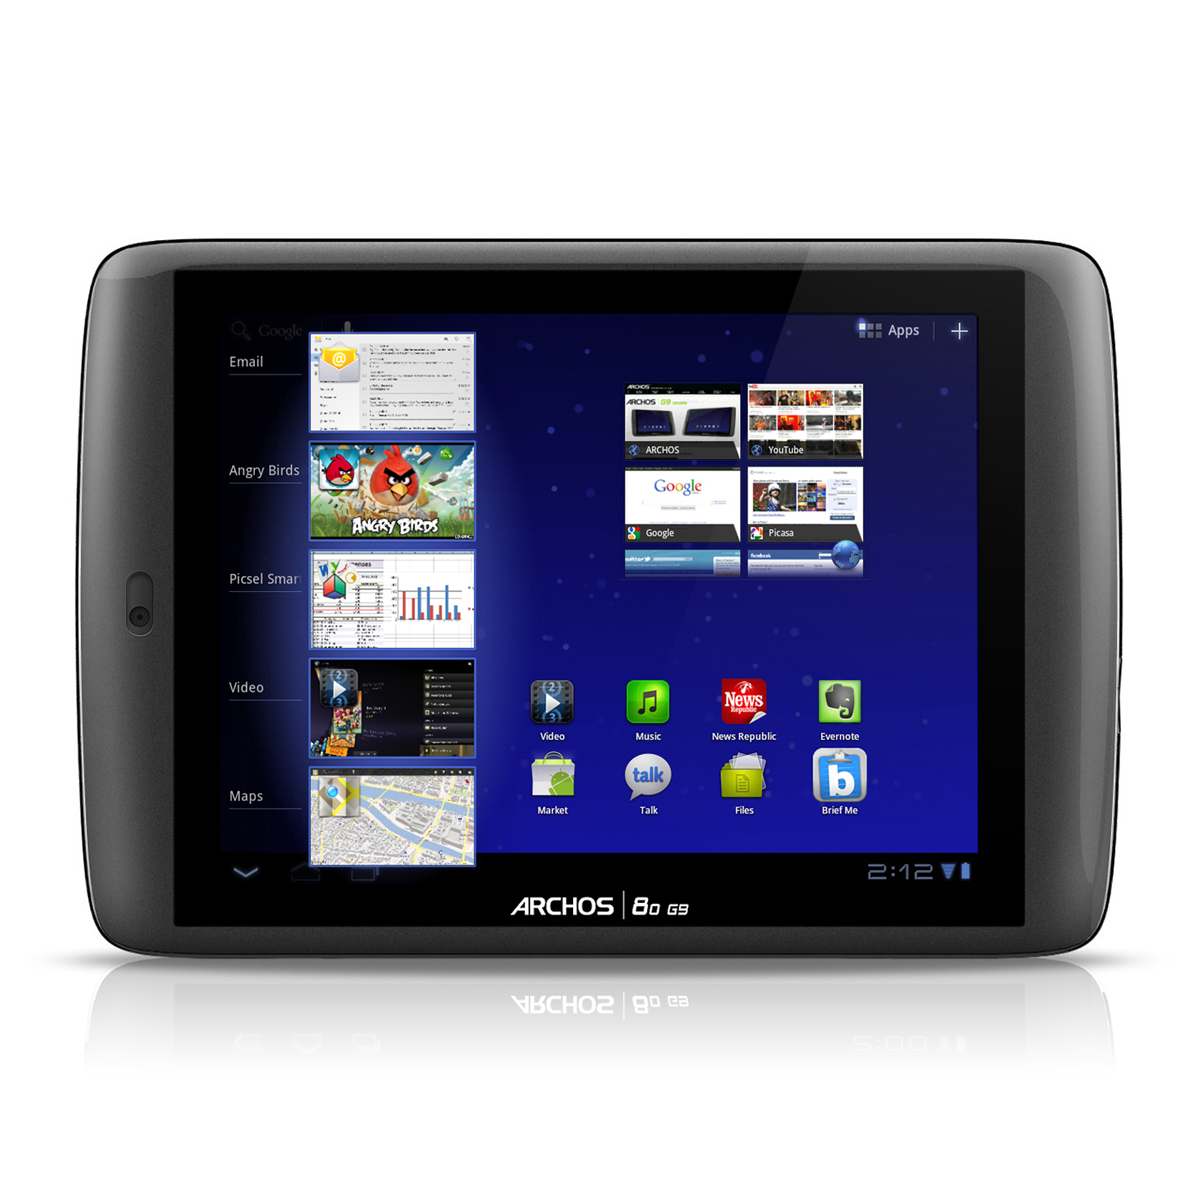 """Tablette tactile Archos 80 G9 Turbo 250 Go Tablette Internet - OMAP 4 Smart multi-core 1.2 GHz 250 Go 8"""" LCD tactile Wi-Fi N/Bluetooth Webcam Android 3.2"""